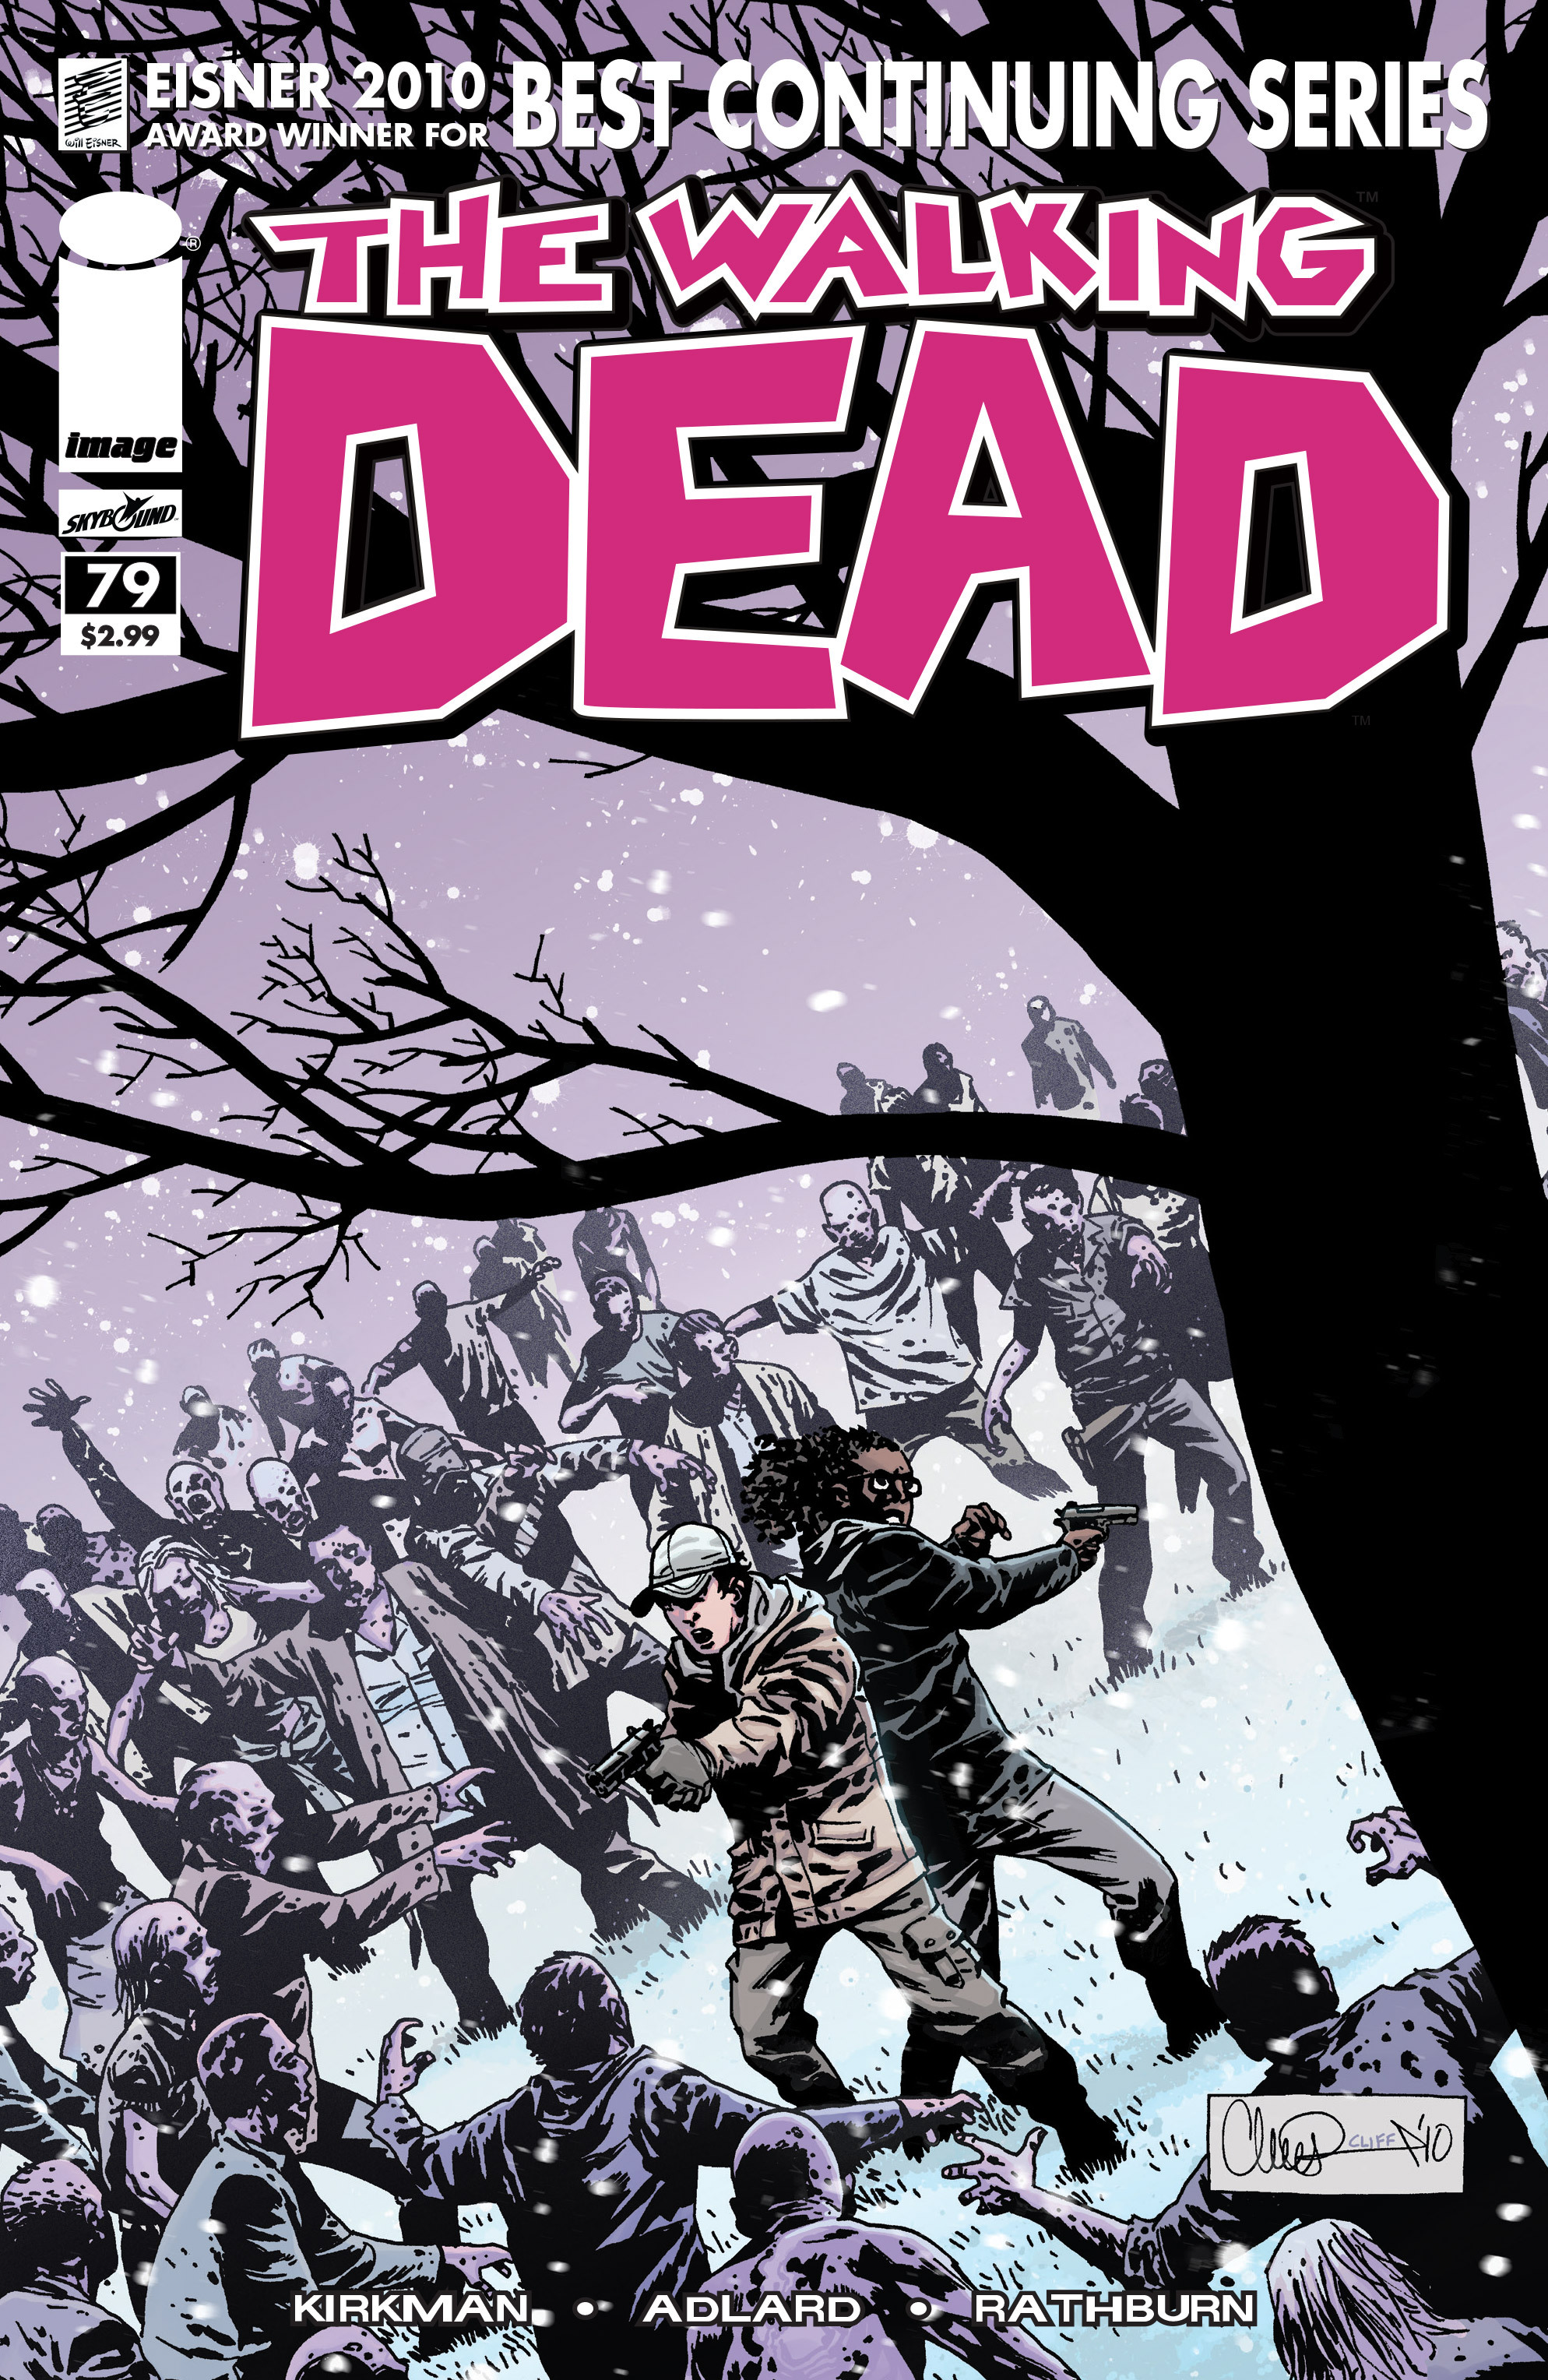 The Walking Dead 79 Page 1